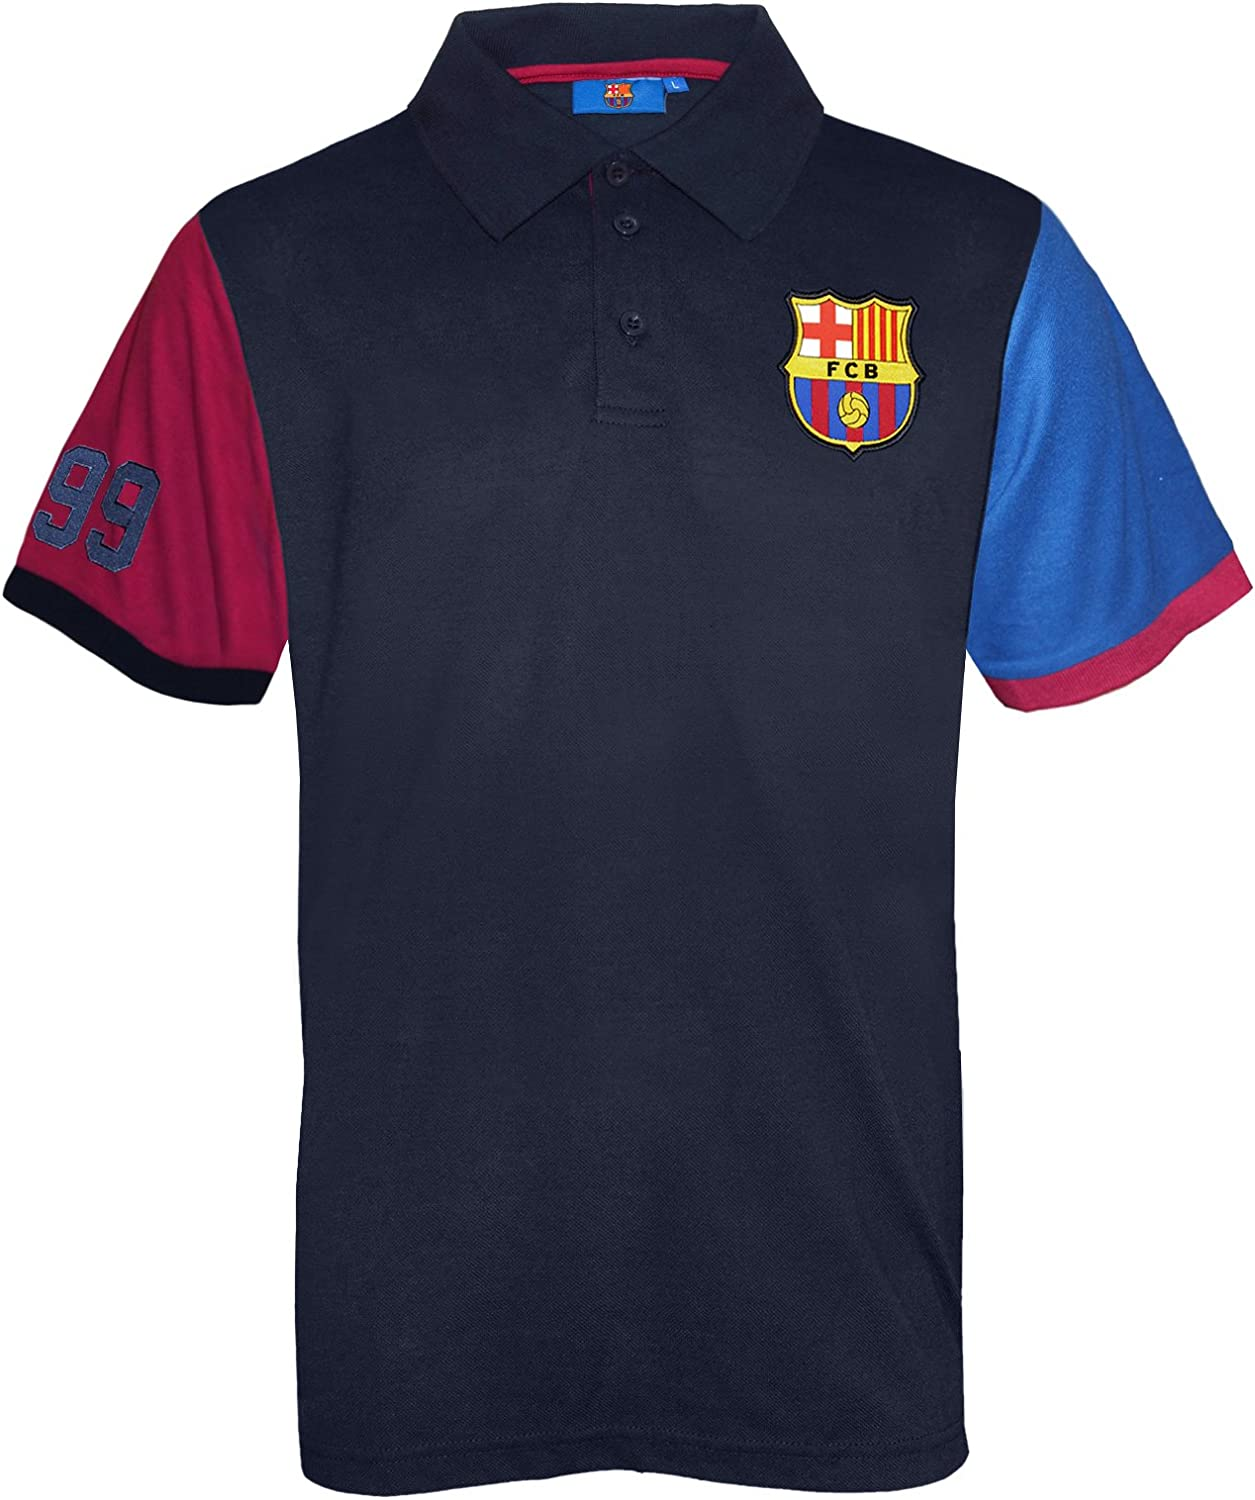 fc barcelona official soccer gift mens polo shirt blue at amazon men s clothing store fc barcelona official soccer gift mens polo shirt blue